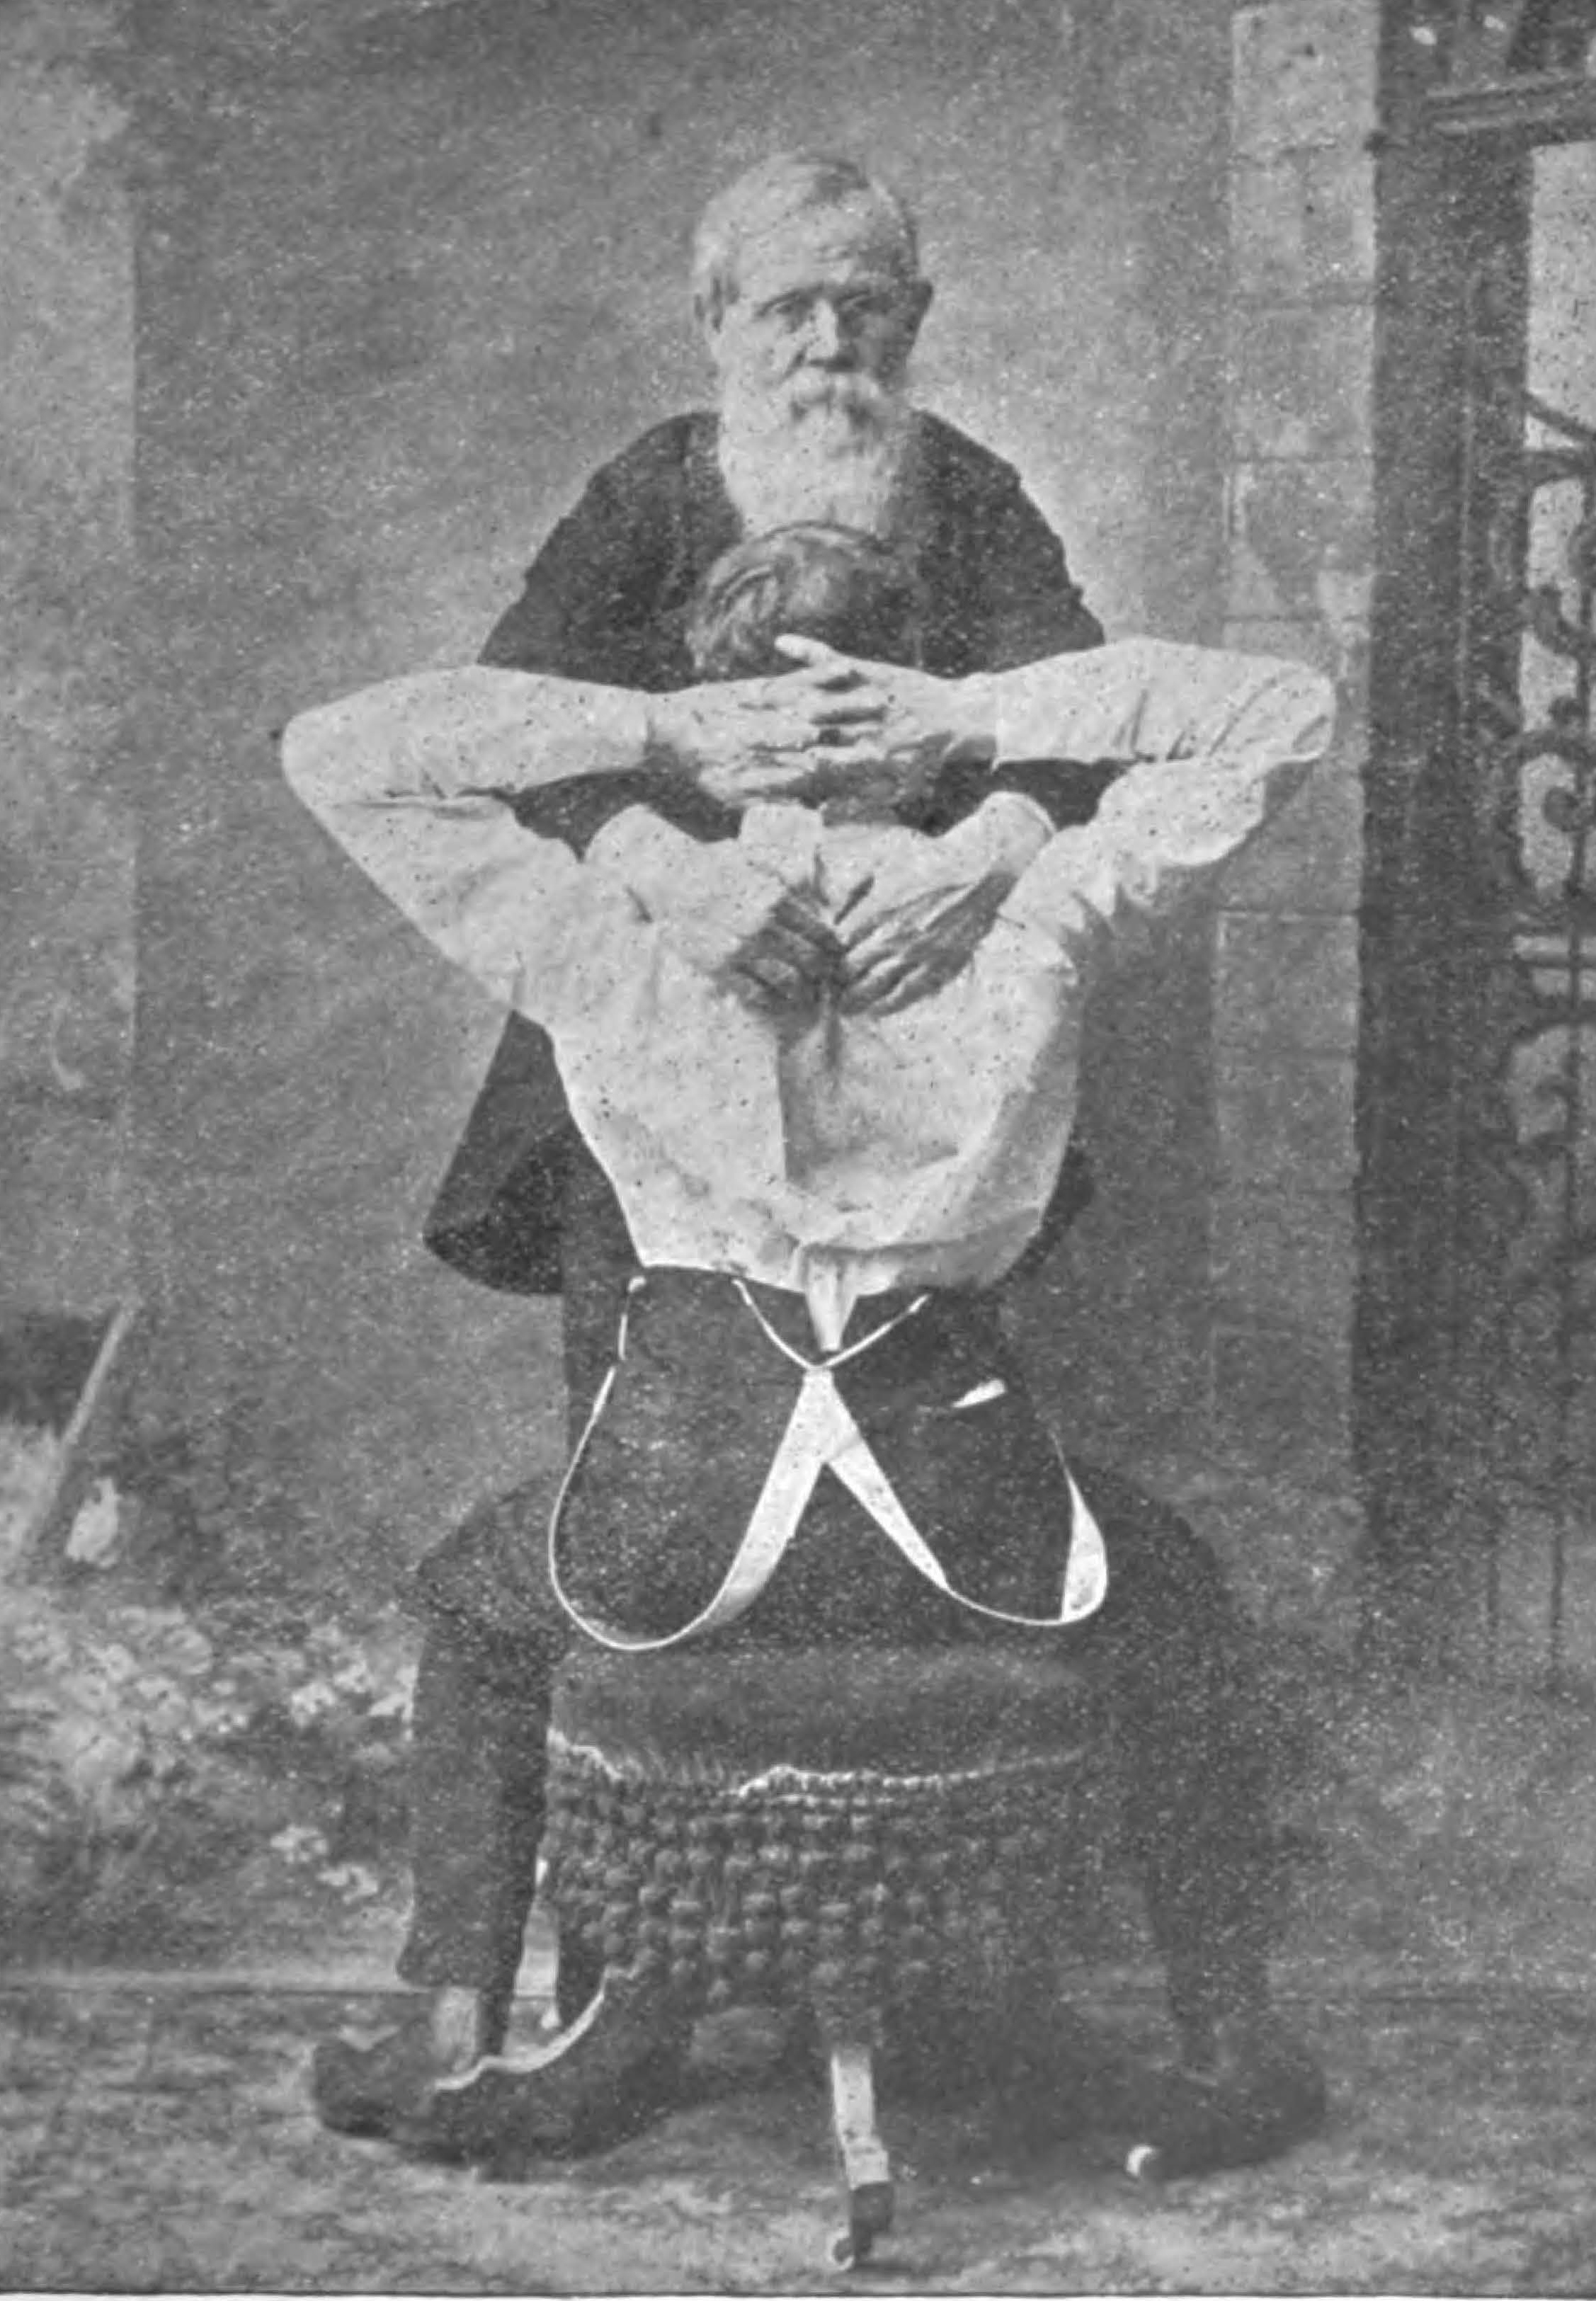 Davis demonstrating chest and spinal cord extention in 1909.